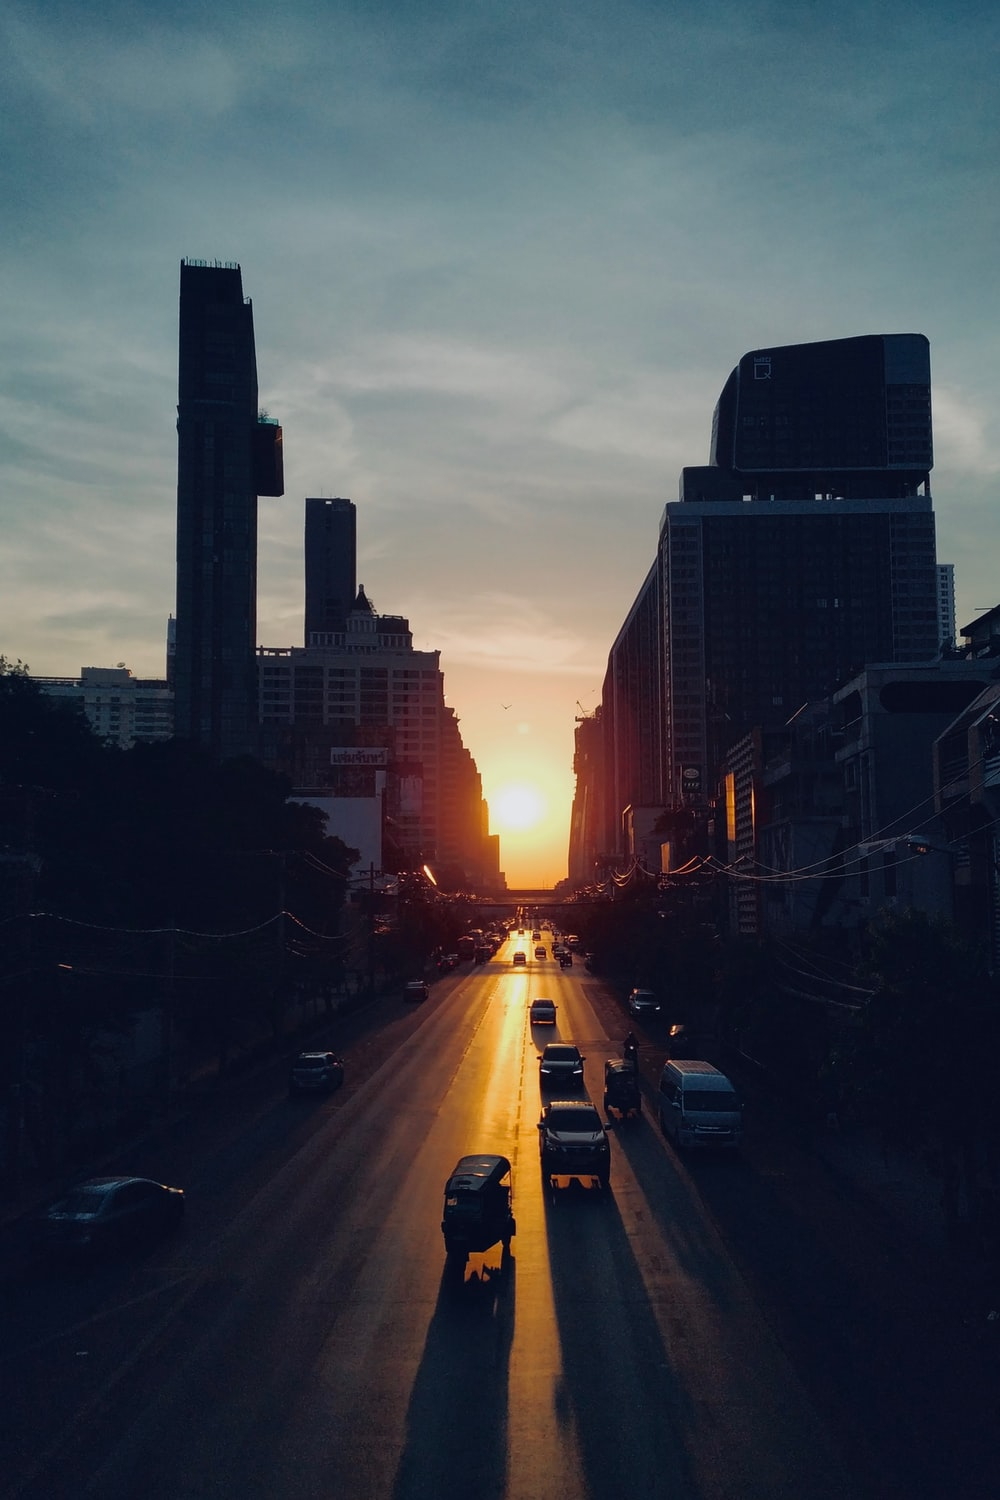 cars on road between high rise buildings during sunset